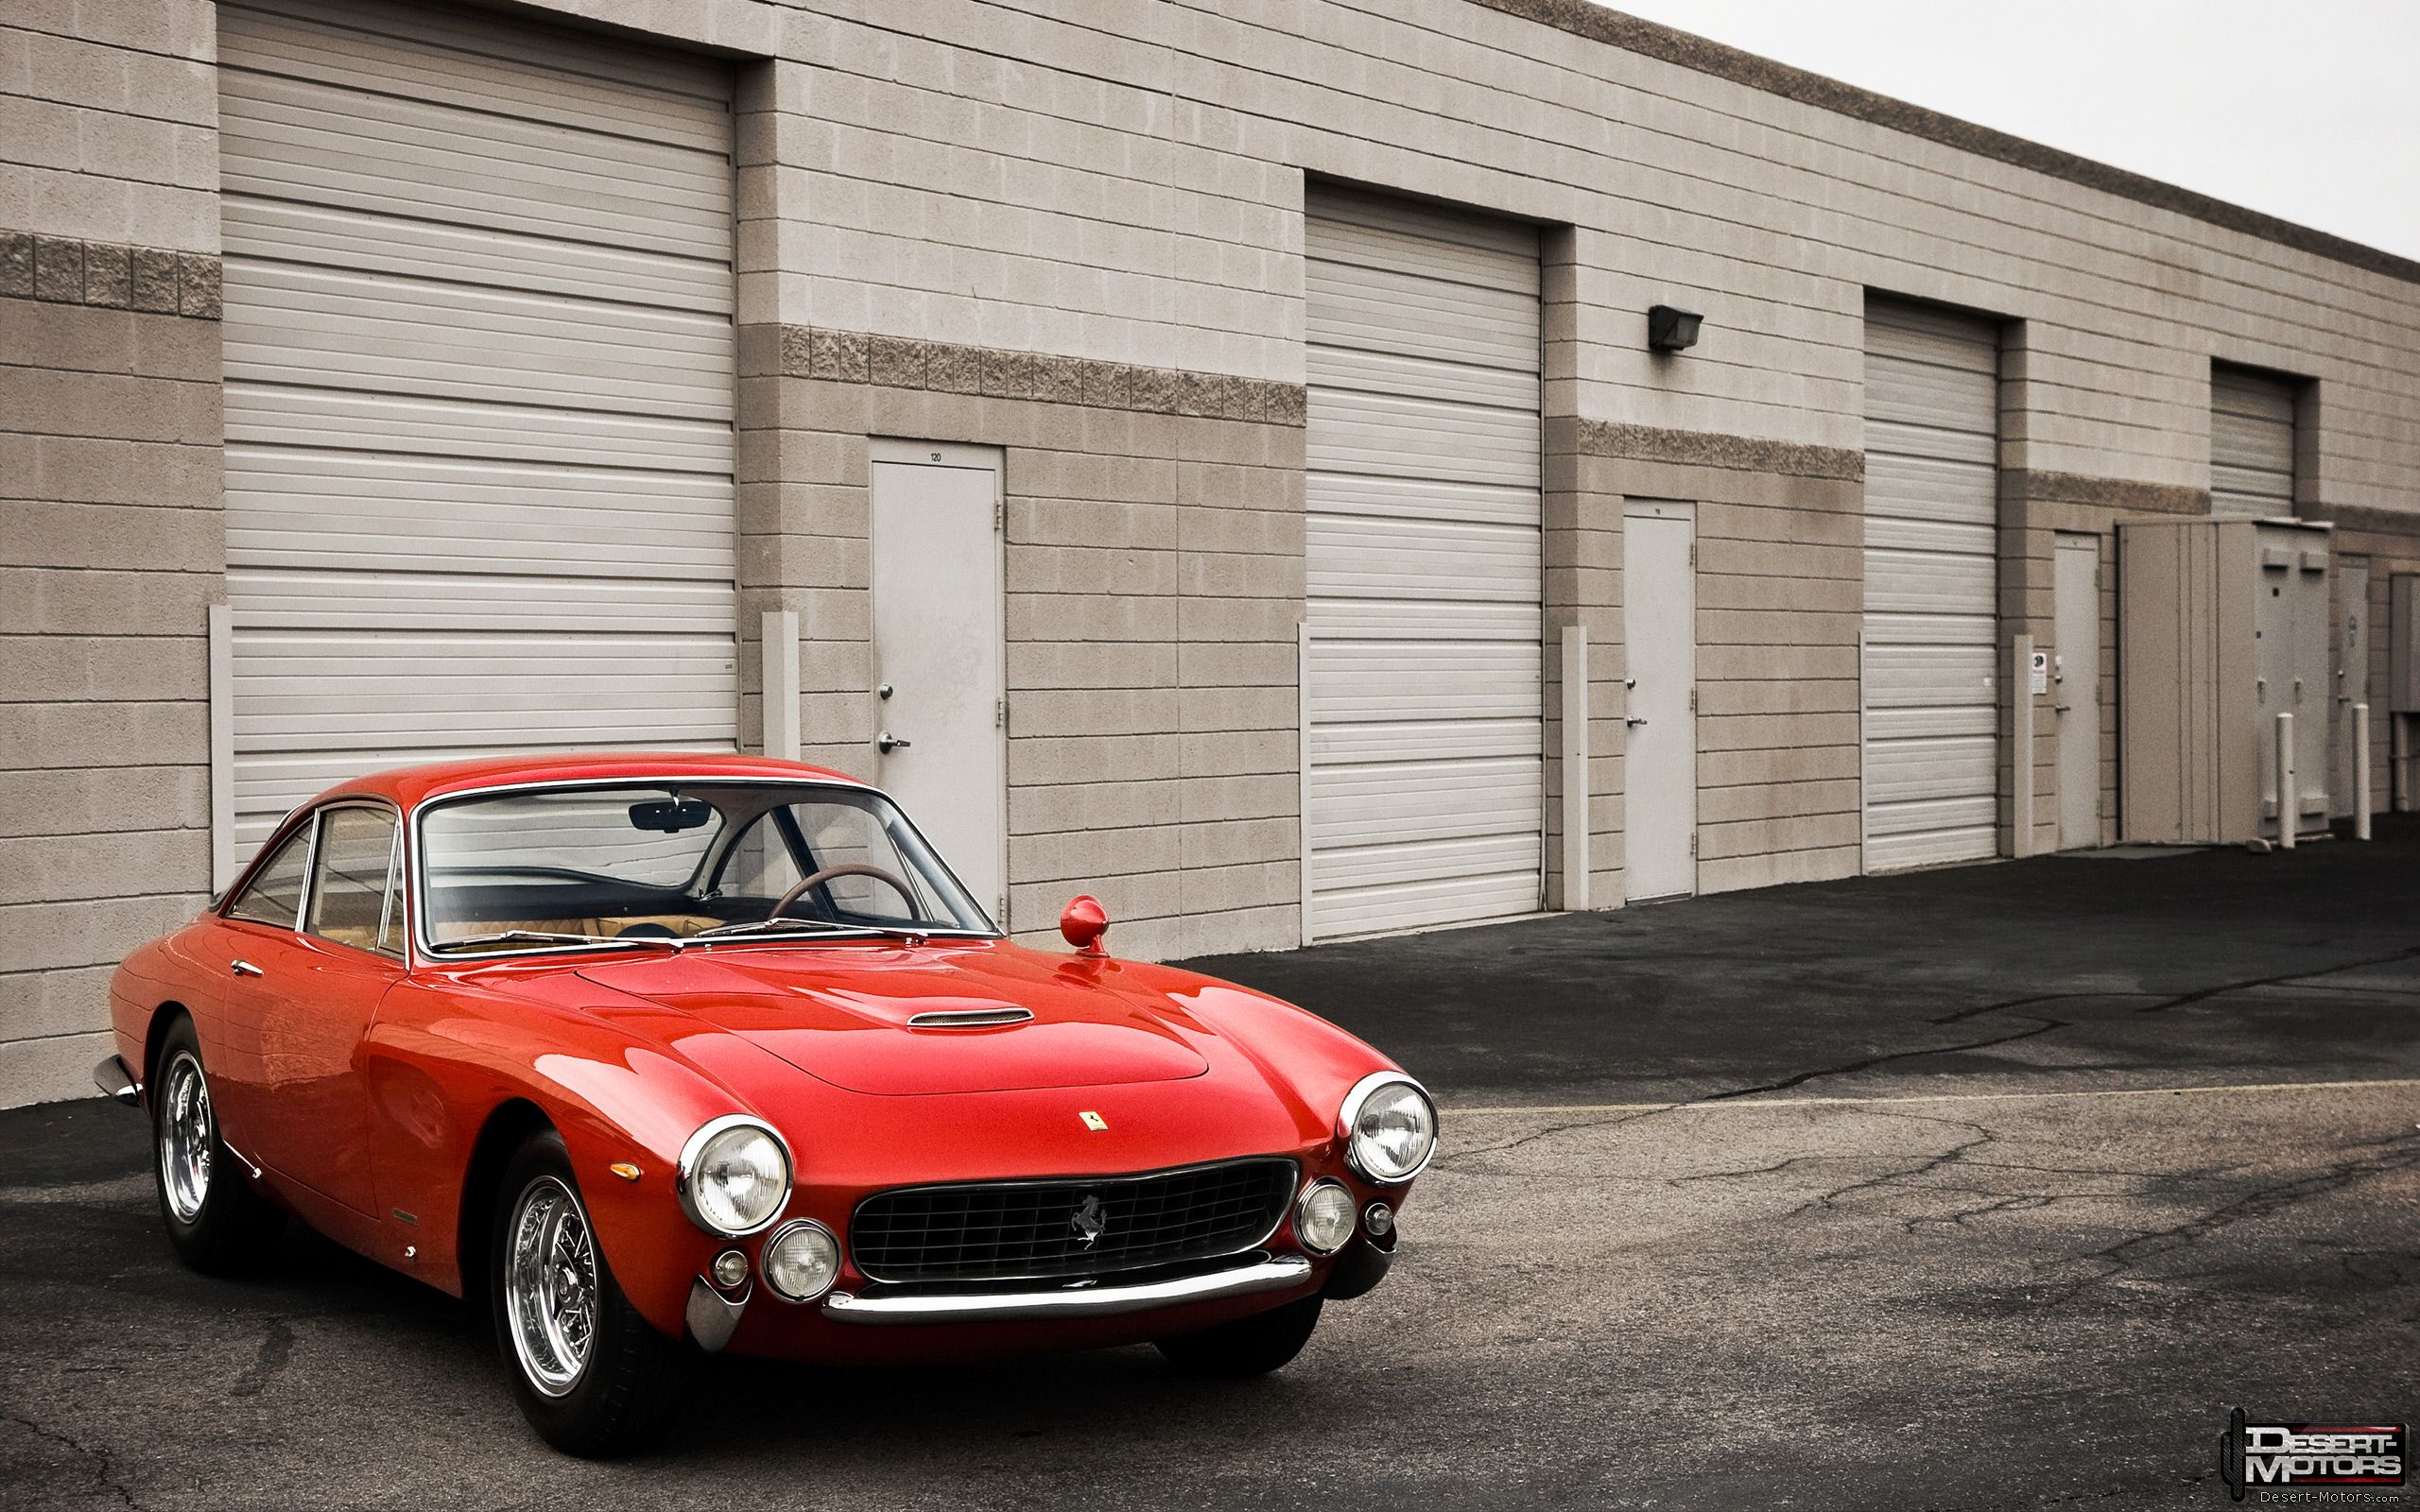 Ferrari 250 GT Lusso | Cars | Pinterest | Ferrari car, Ferrari and ...